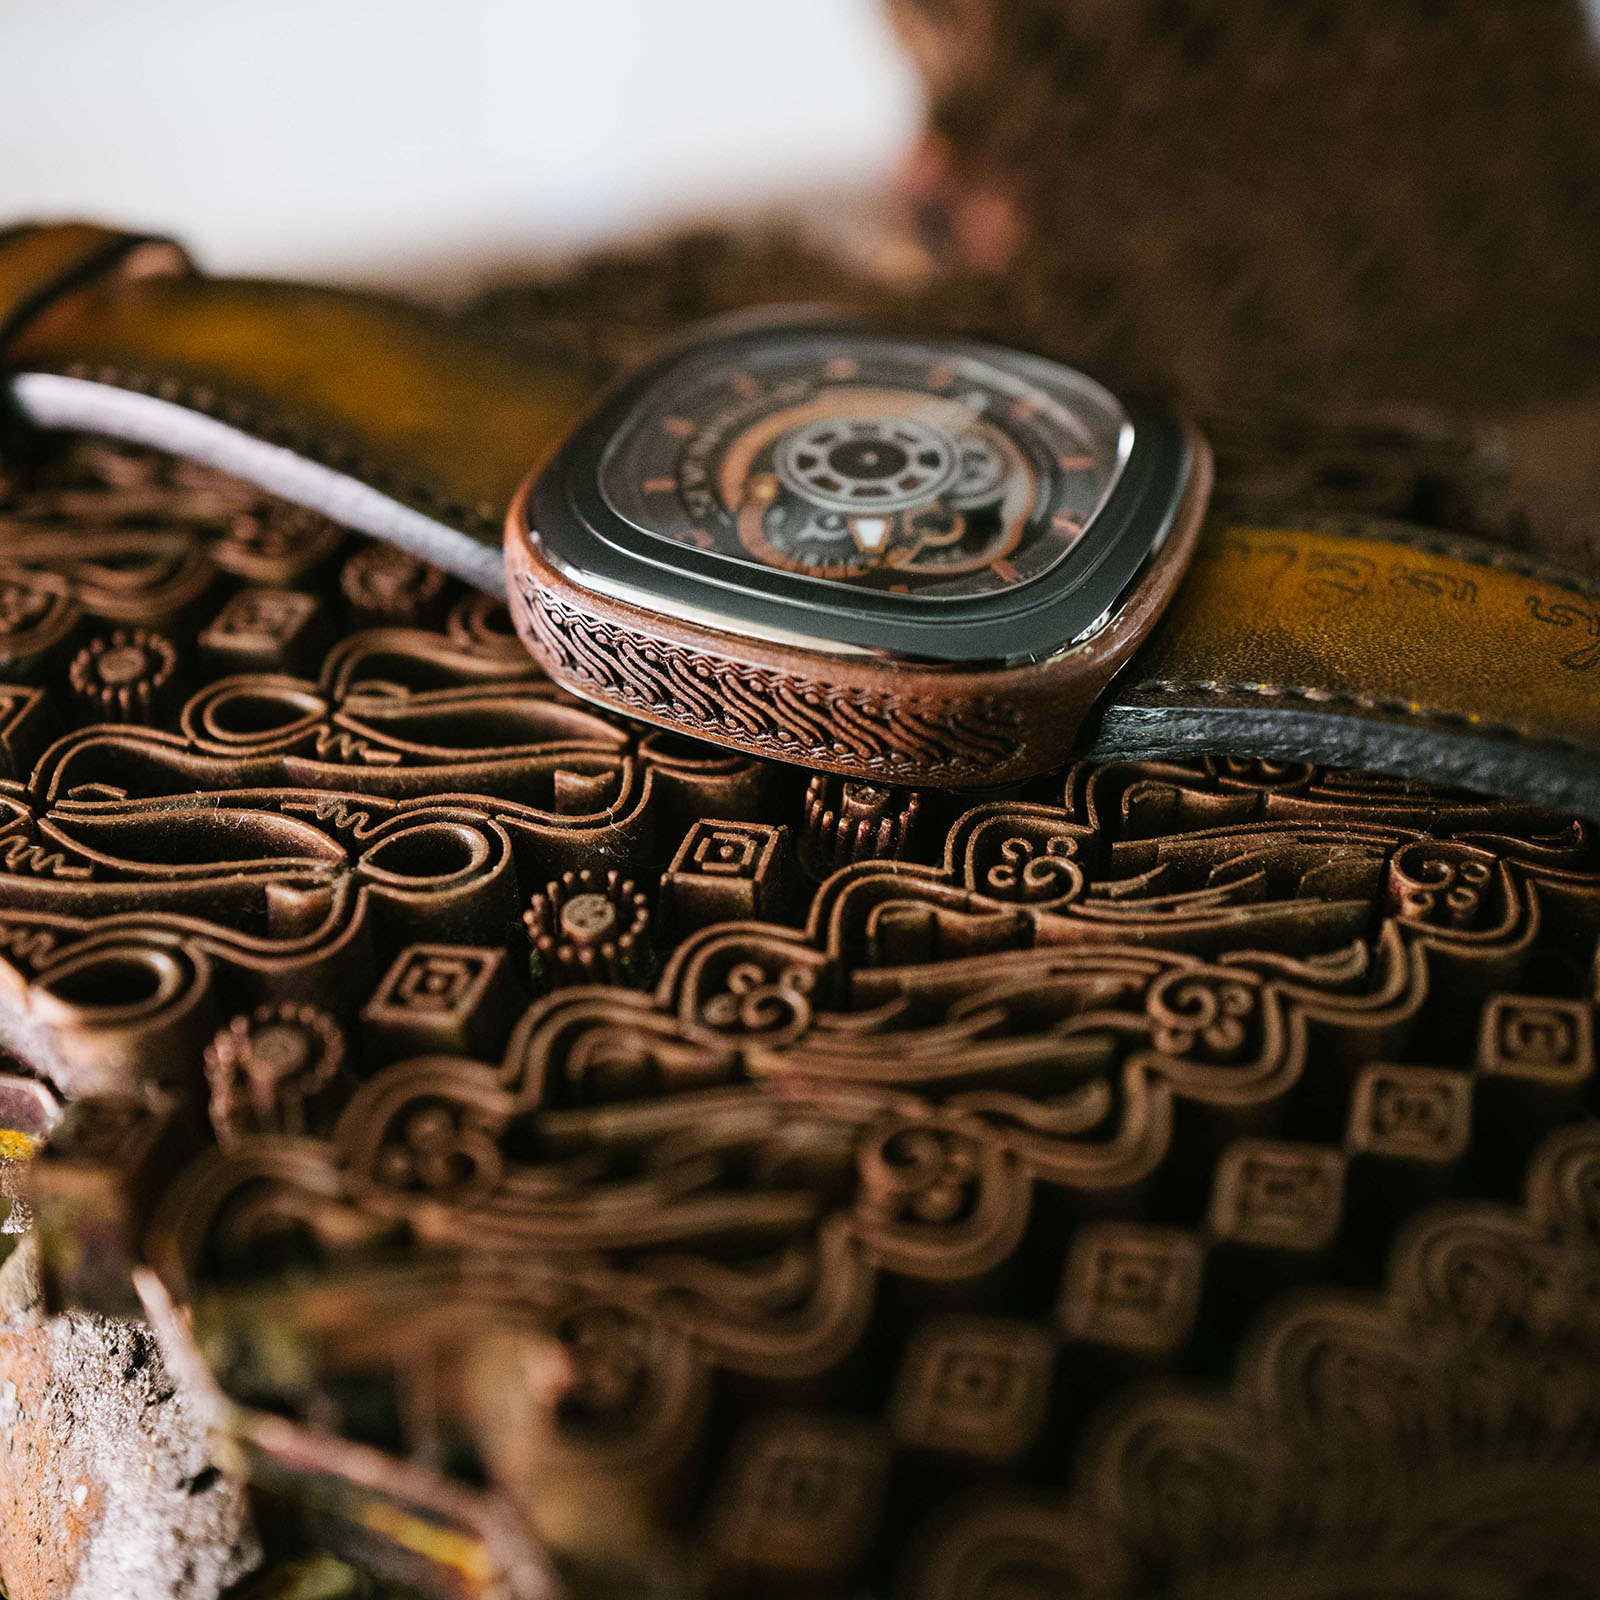 SEVENFRIDAY P2B/05 Batik Indonesia Limited Edition Series Automatic Brown Leather Strap Machtwatch